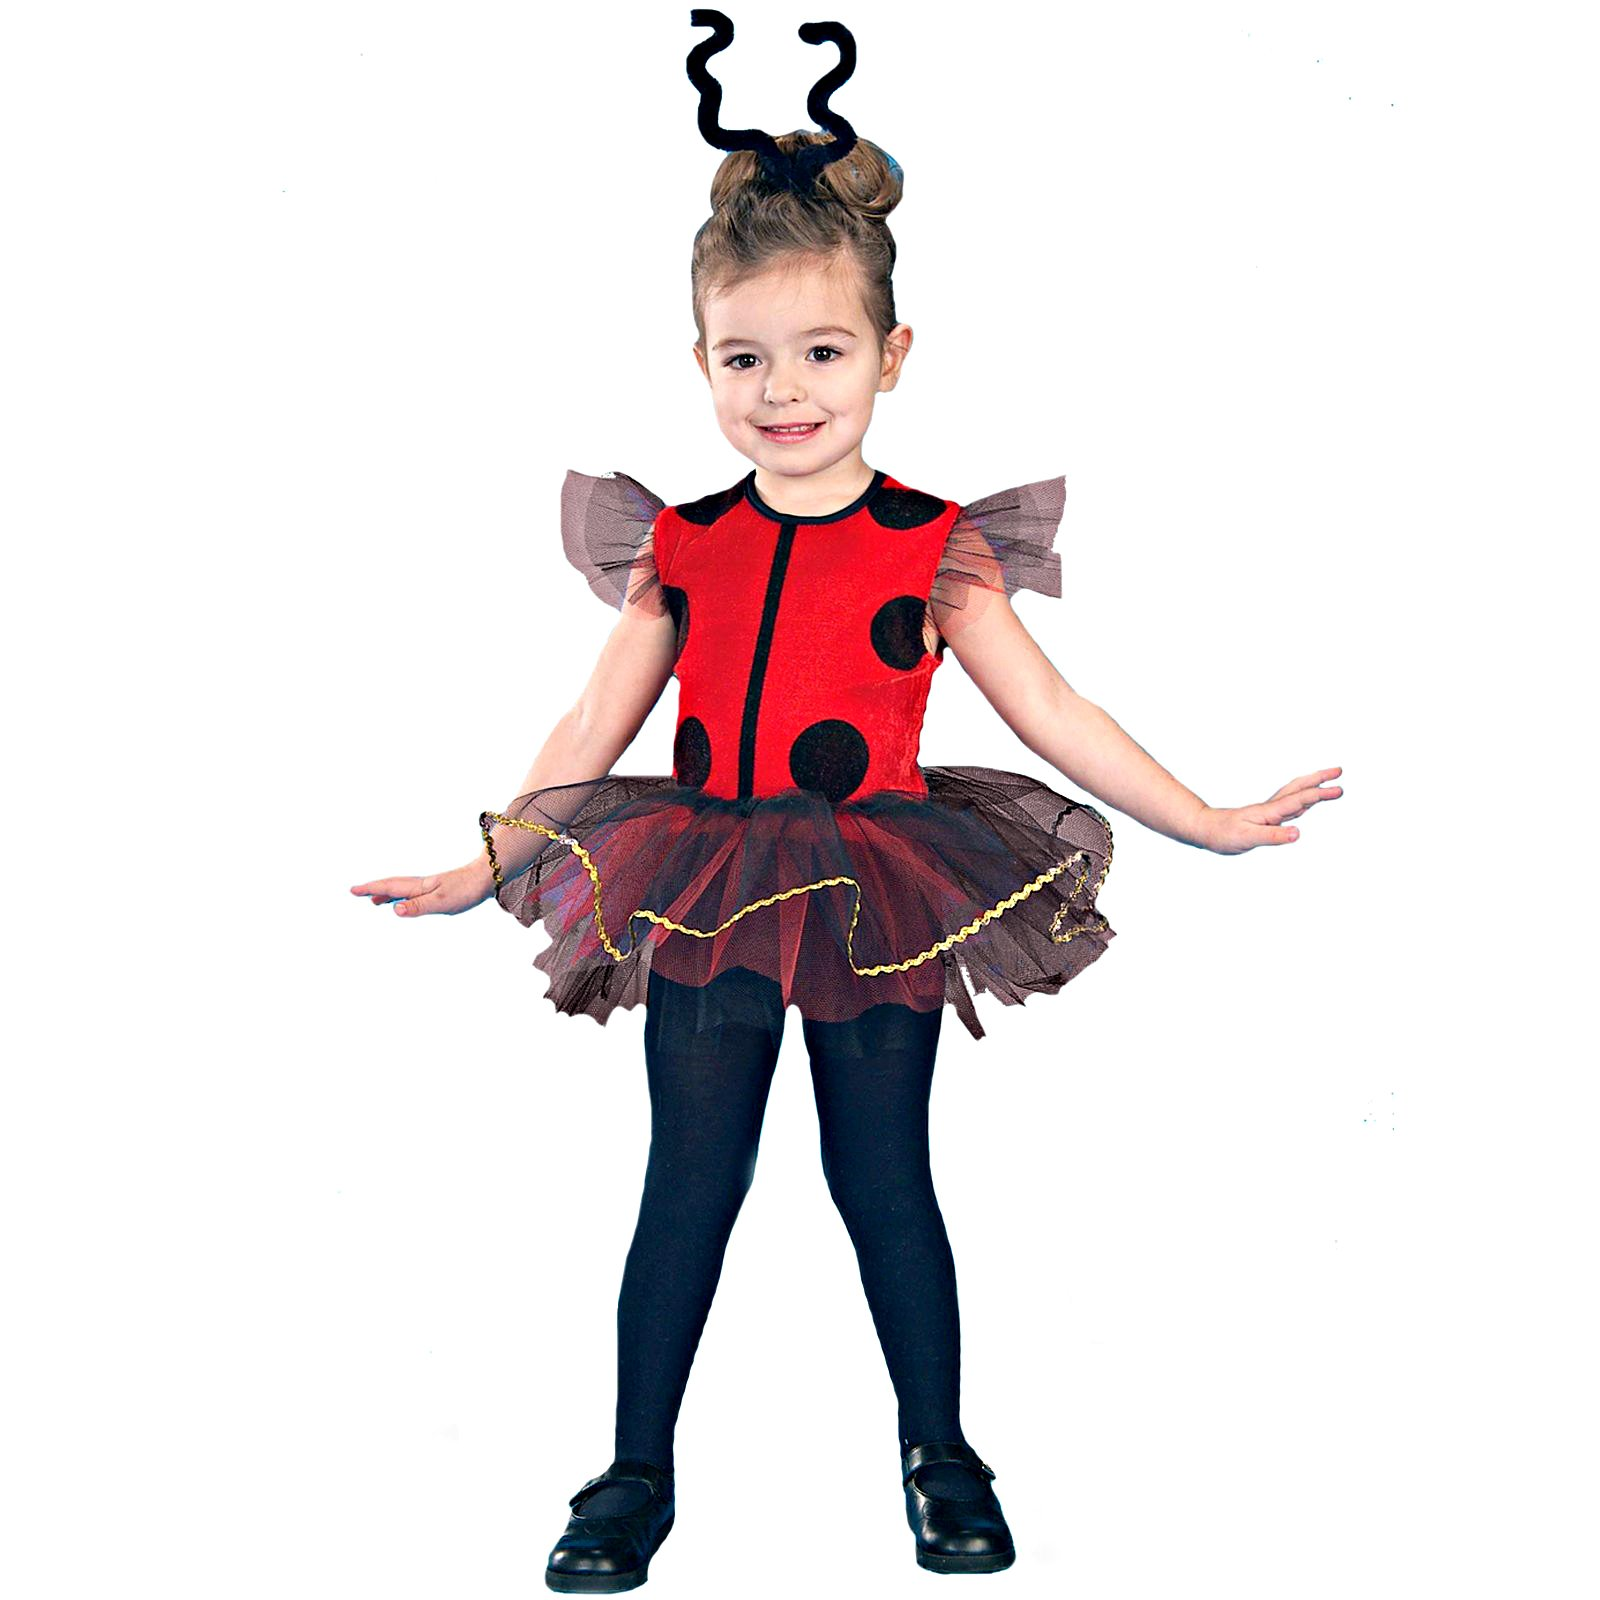 https://www.dascheap.com/inventory/images/Costumes/Baby%20Costumes/lil-lady-bug-toddler-costume-all-polyester-fabrics-exclusive-of-trim-2-4t.jpg